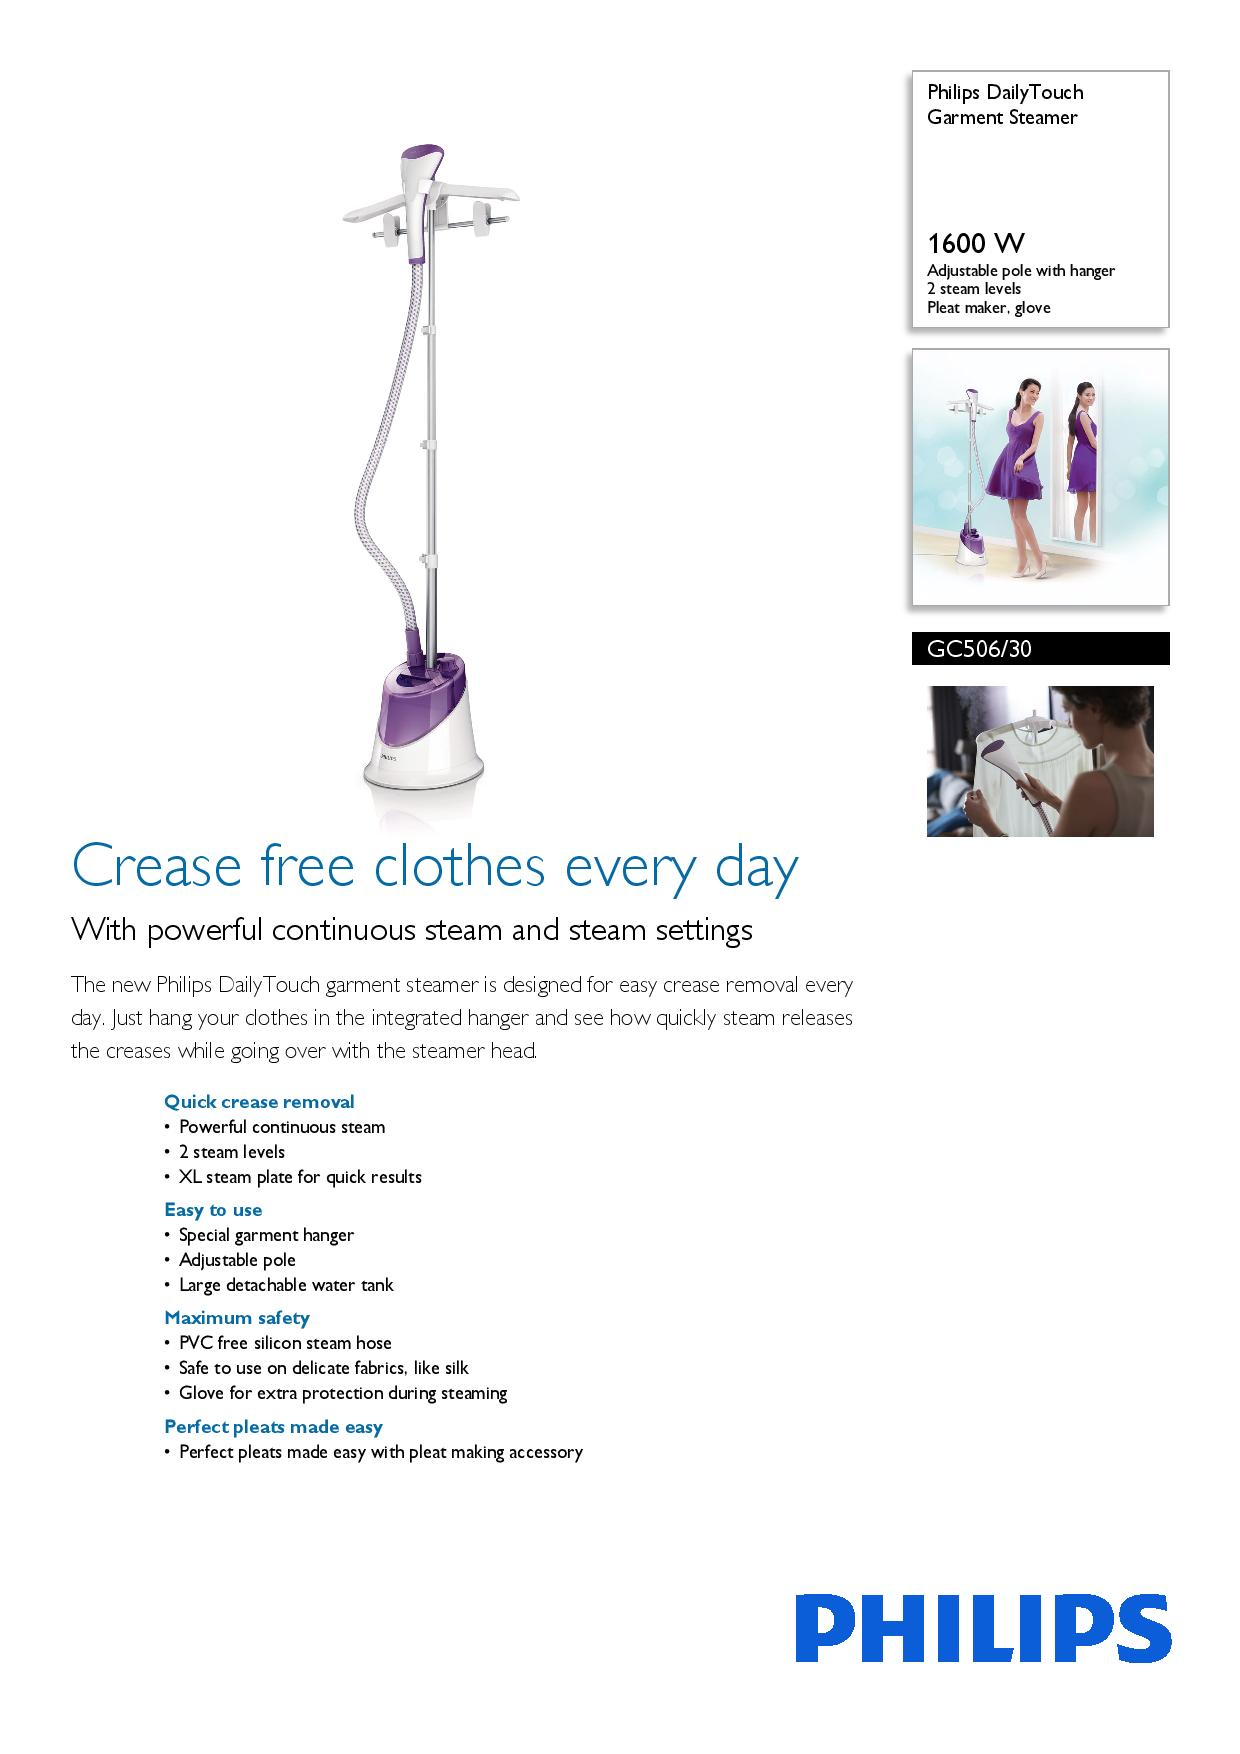 Every Need Want Day Philips Garment Steamer Gc504 Dailytouch Gc506 1600w Adjustable Pole With Hanger 2 Steam Levels Pleat Maker Glove